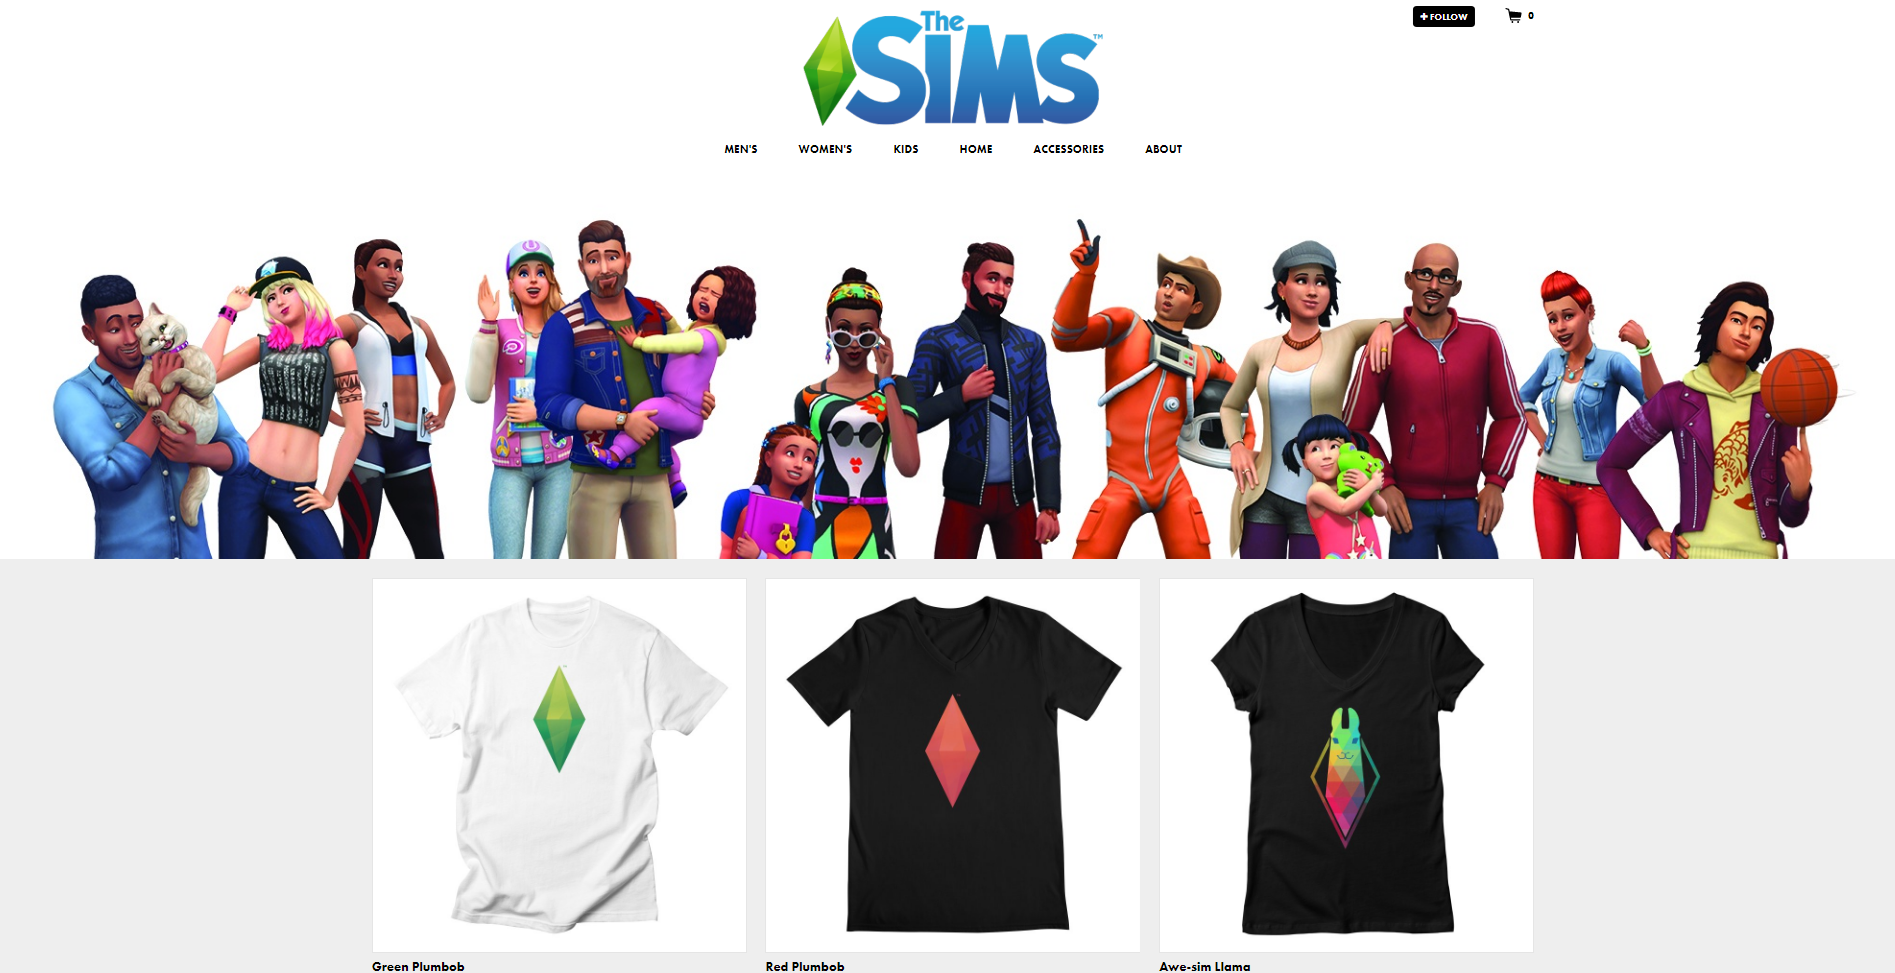 The Sims Launches an Official Merch Store! | SimsVIP